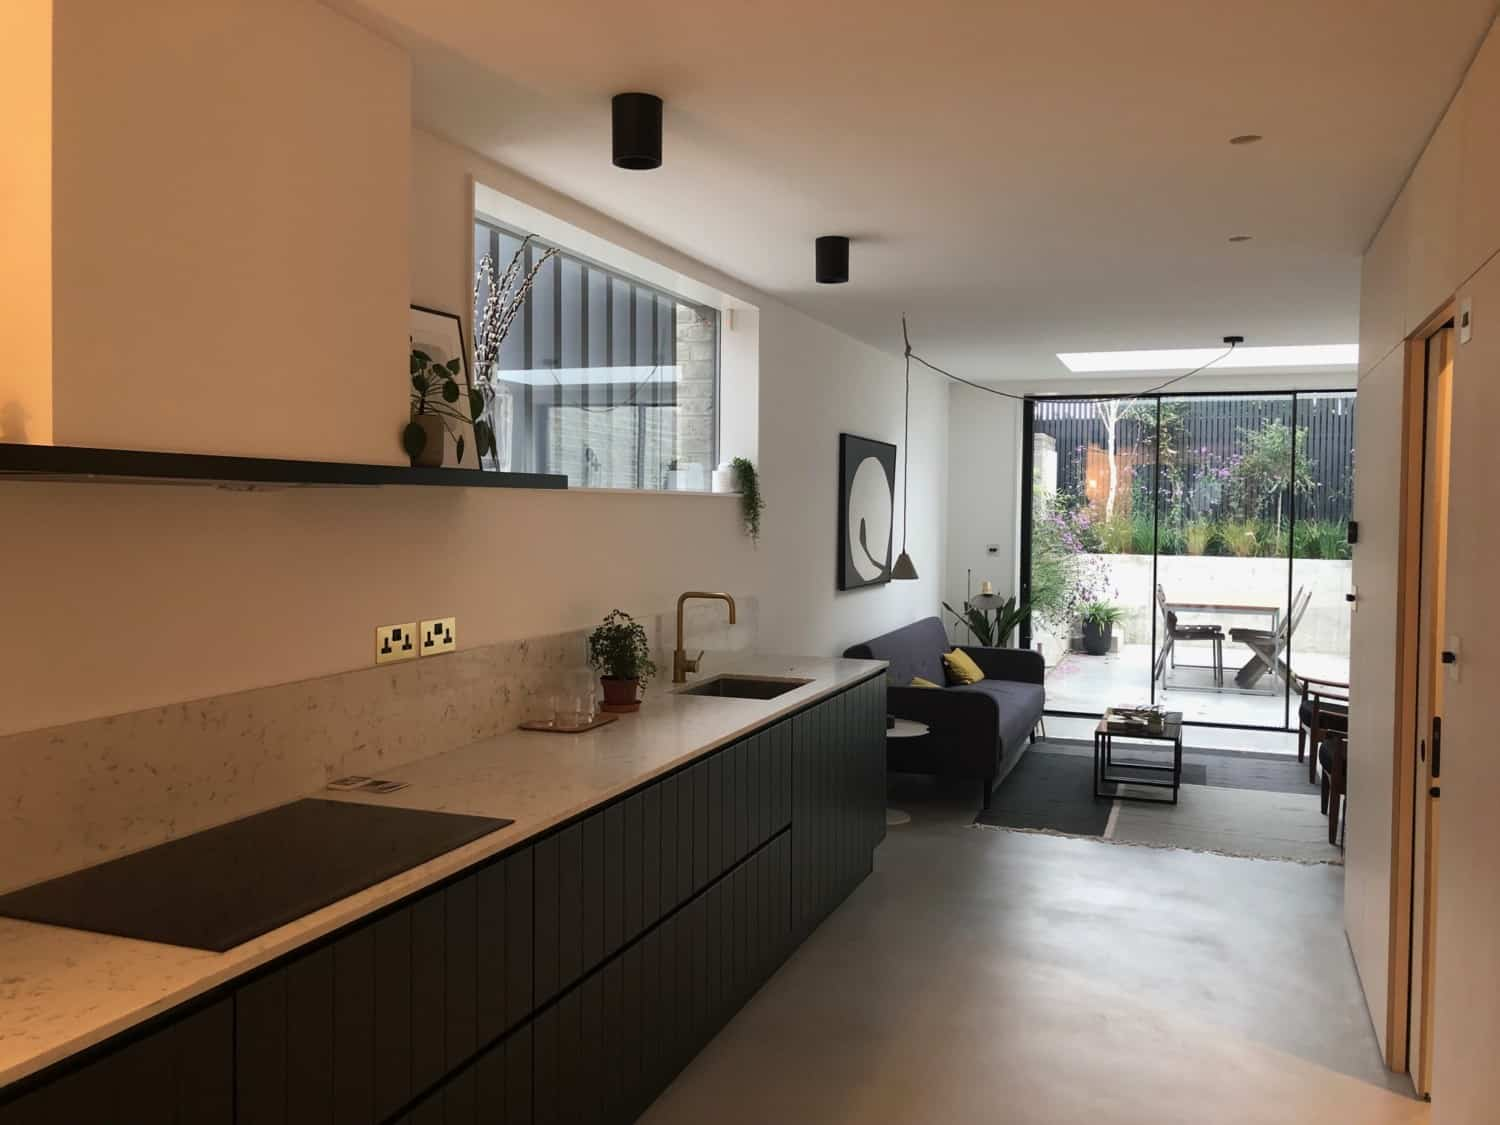 Kitchen with grey cabinets and microtopping floor